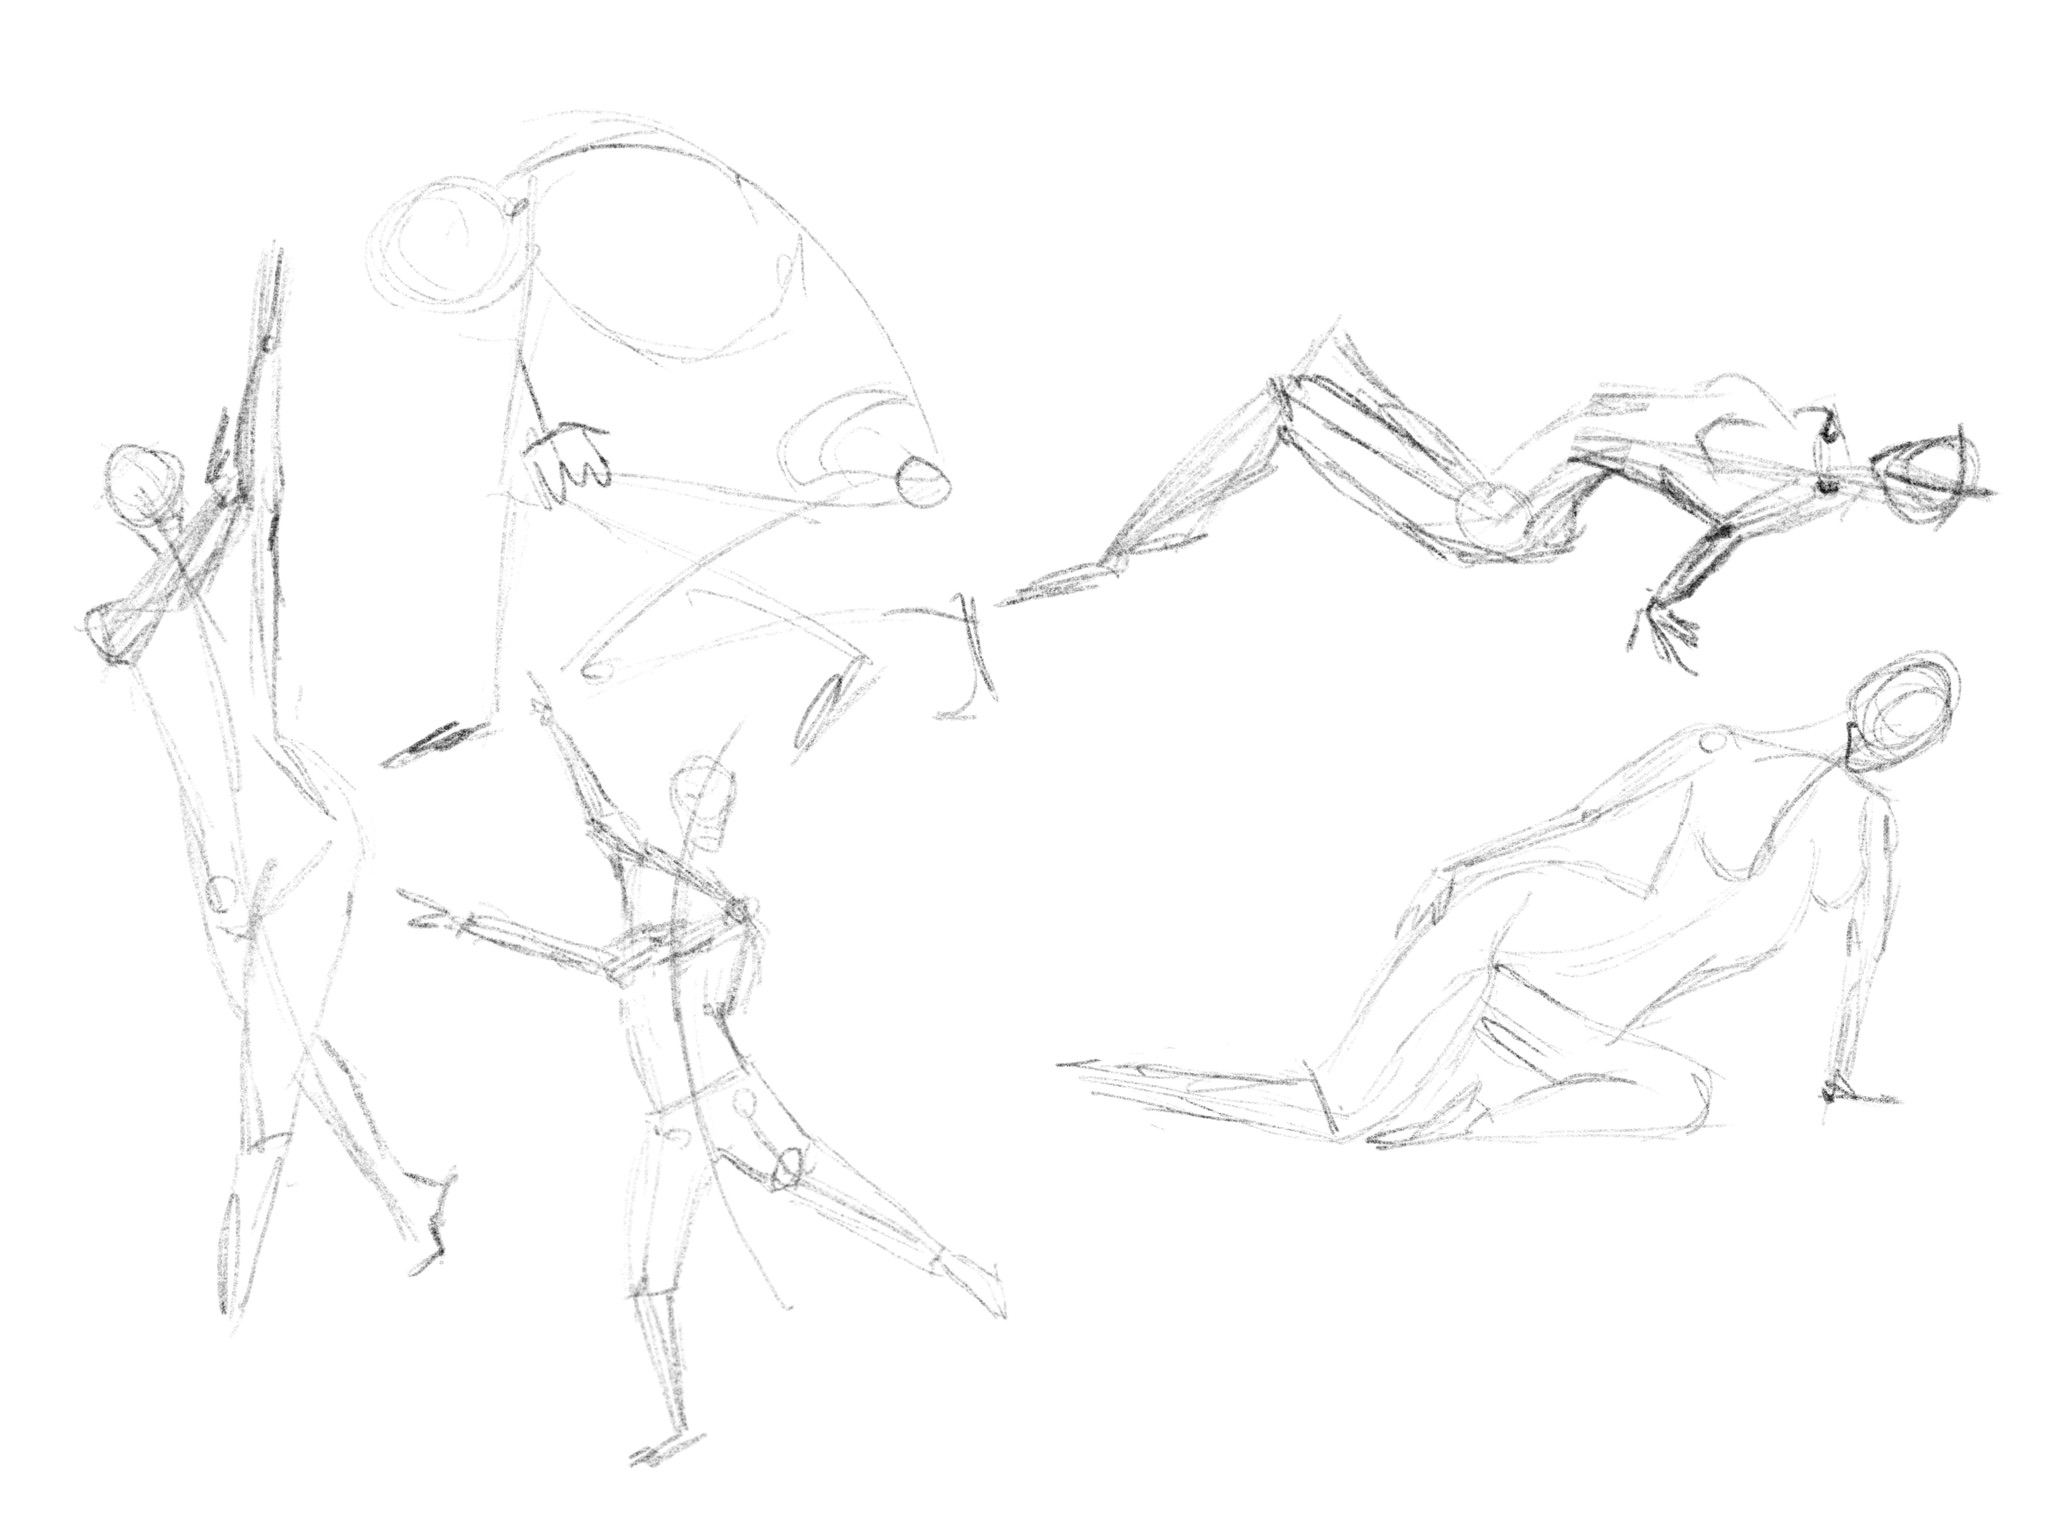 2049x1536 Hands, Feet And Figure Sketching. Looking For Critique